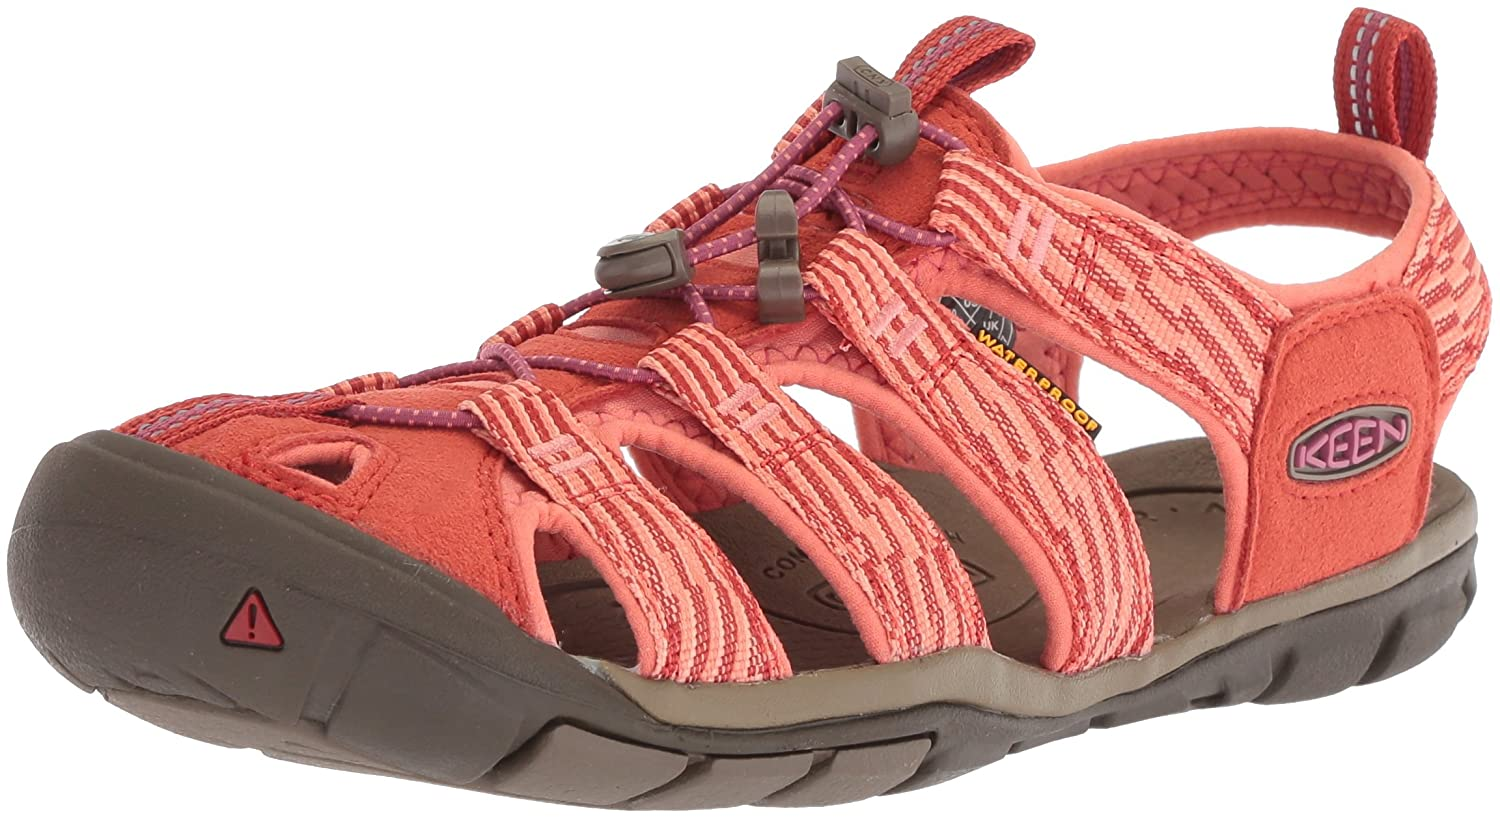 KEEN Women's Clearwater CNX-W Sandal B071CKWLVQ 8 B(M) US|Summer Fig/Crabapple